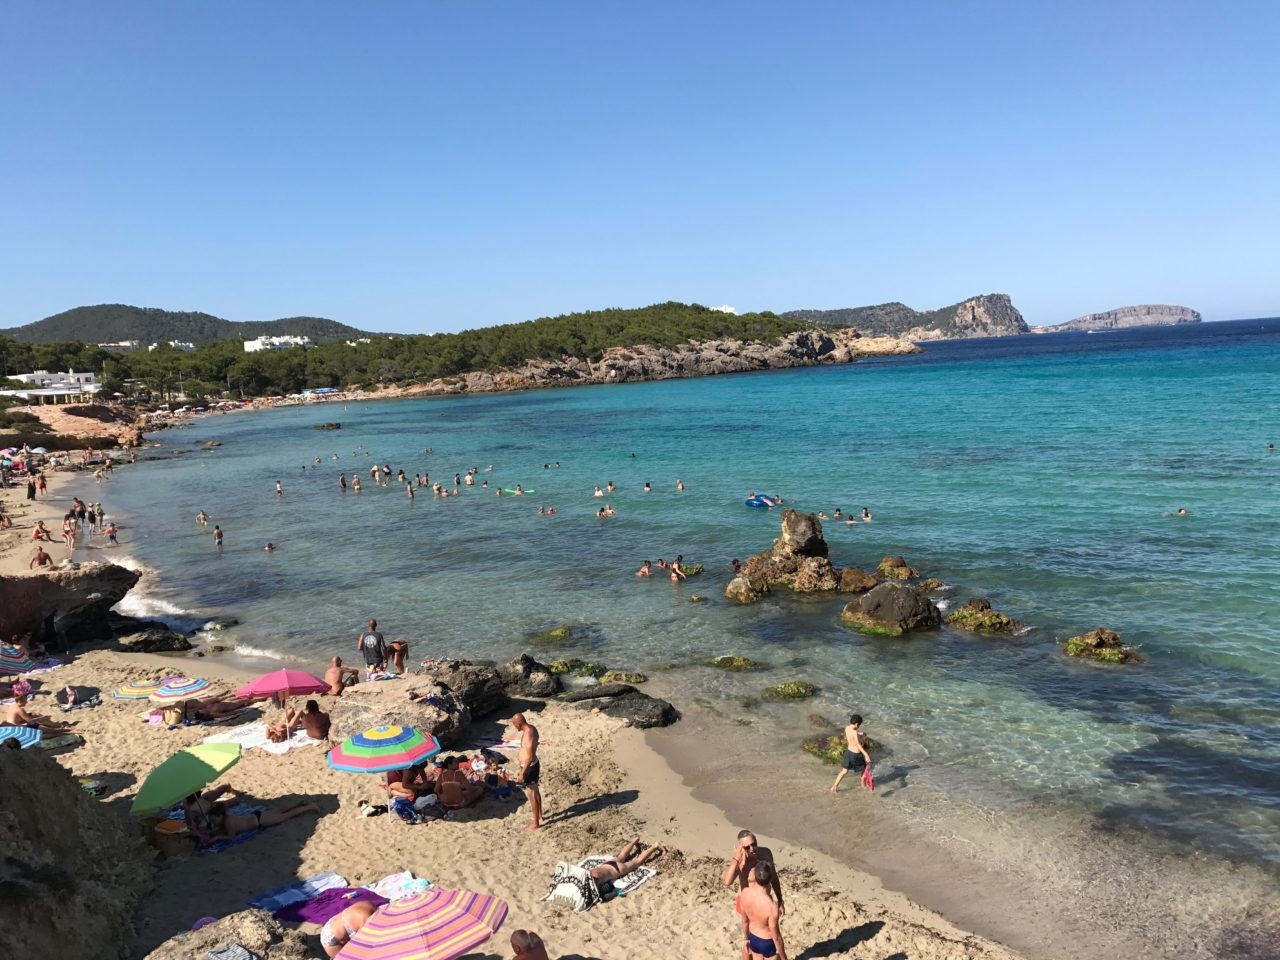 Public Beach In Ibiza In Spain Full Of People